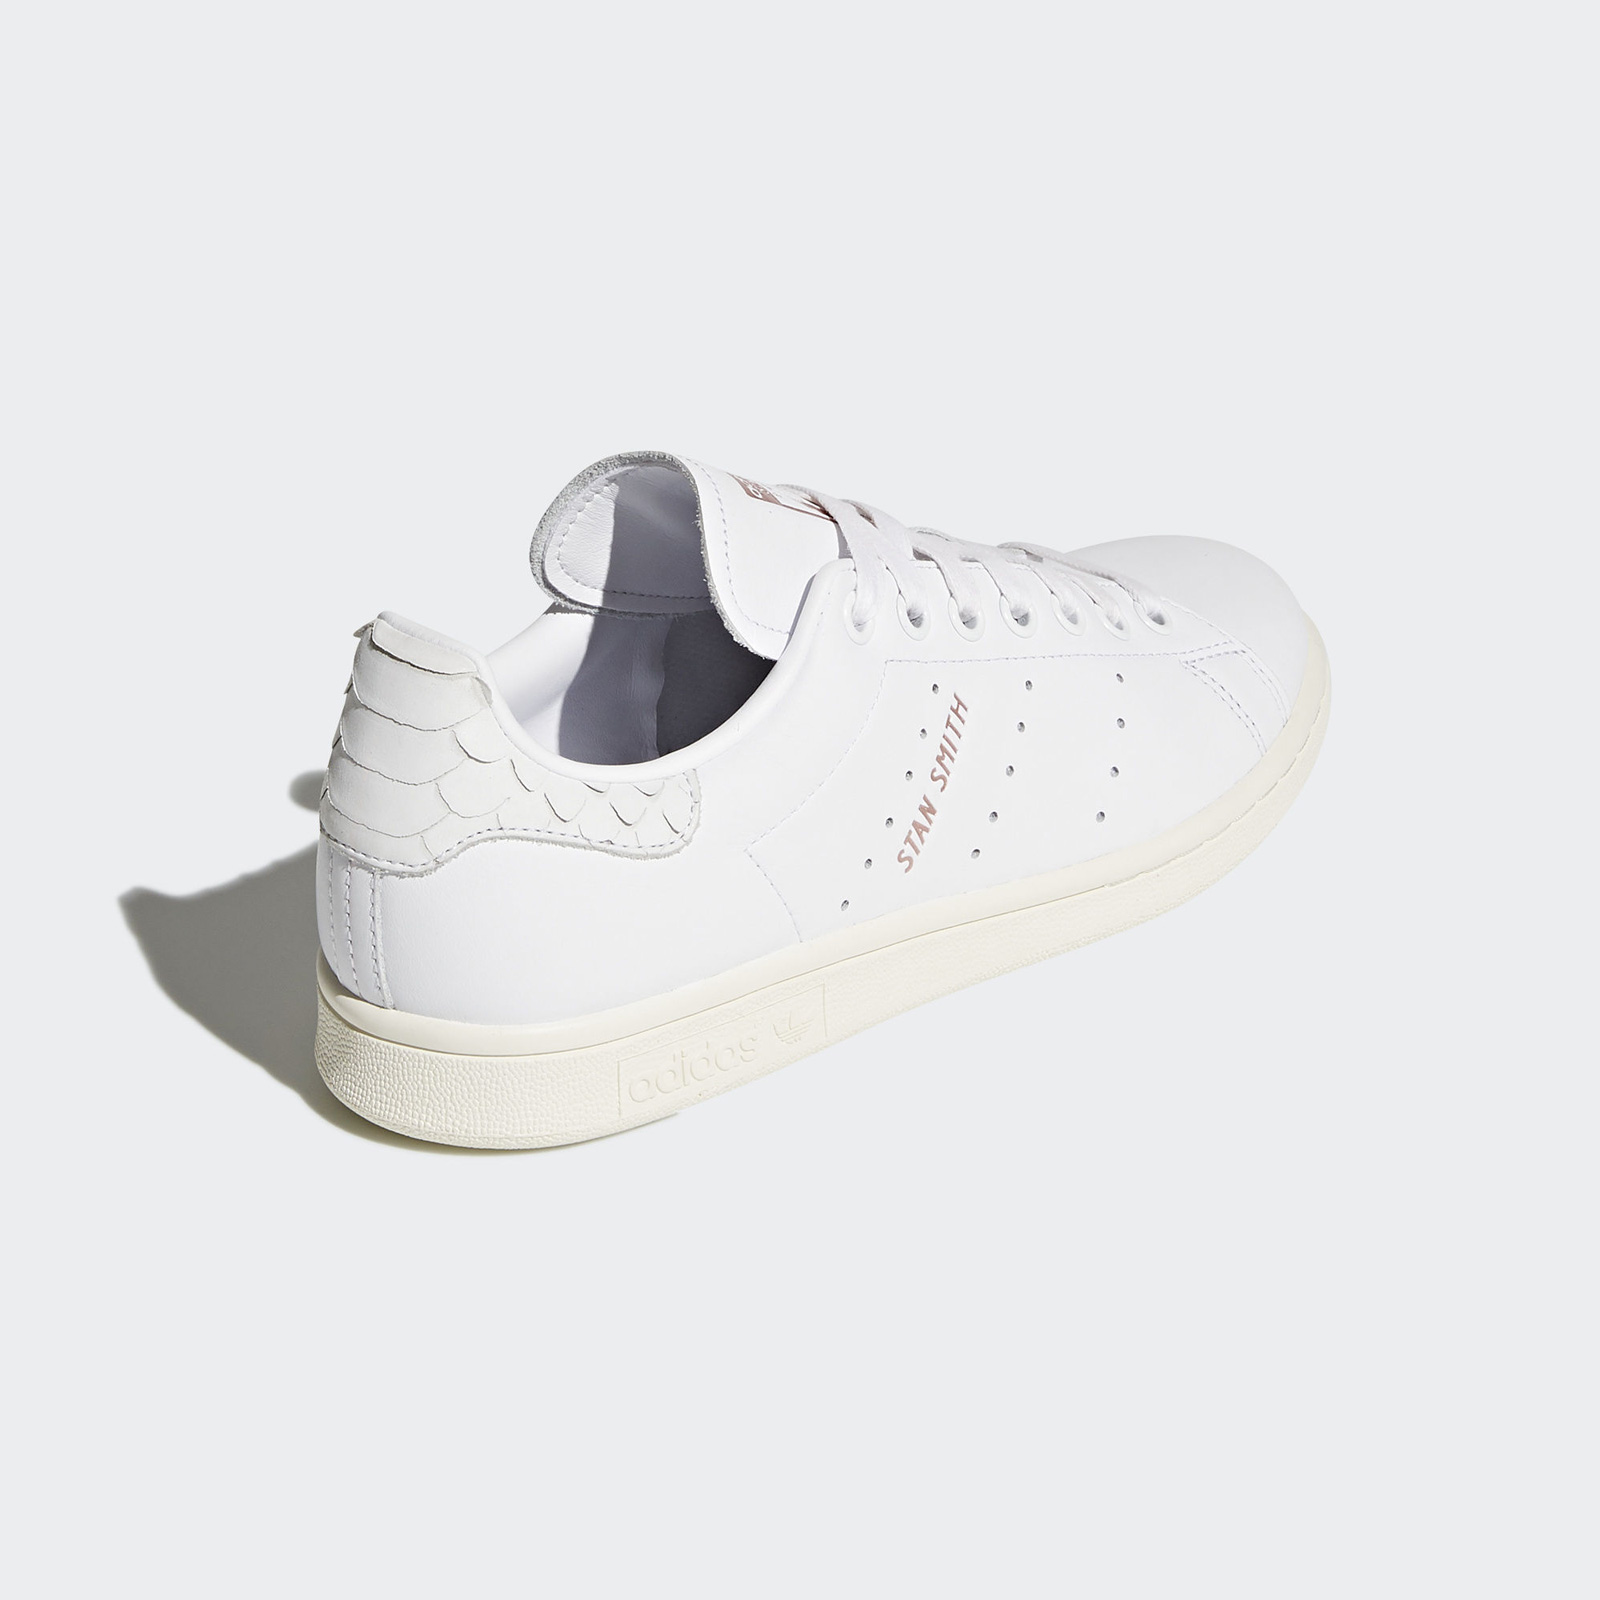 meet d19a8 f53c3 adidas Stan Smith W - Cq2810 - Sneakersnstuff I Sneakers ...